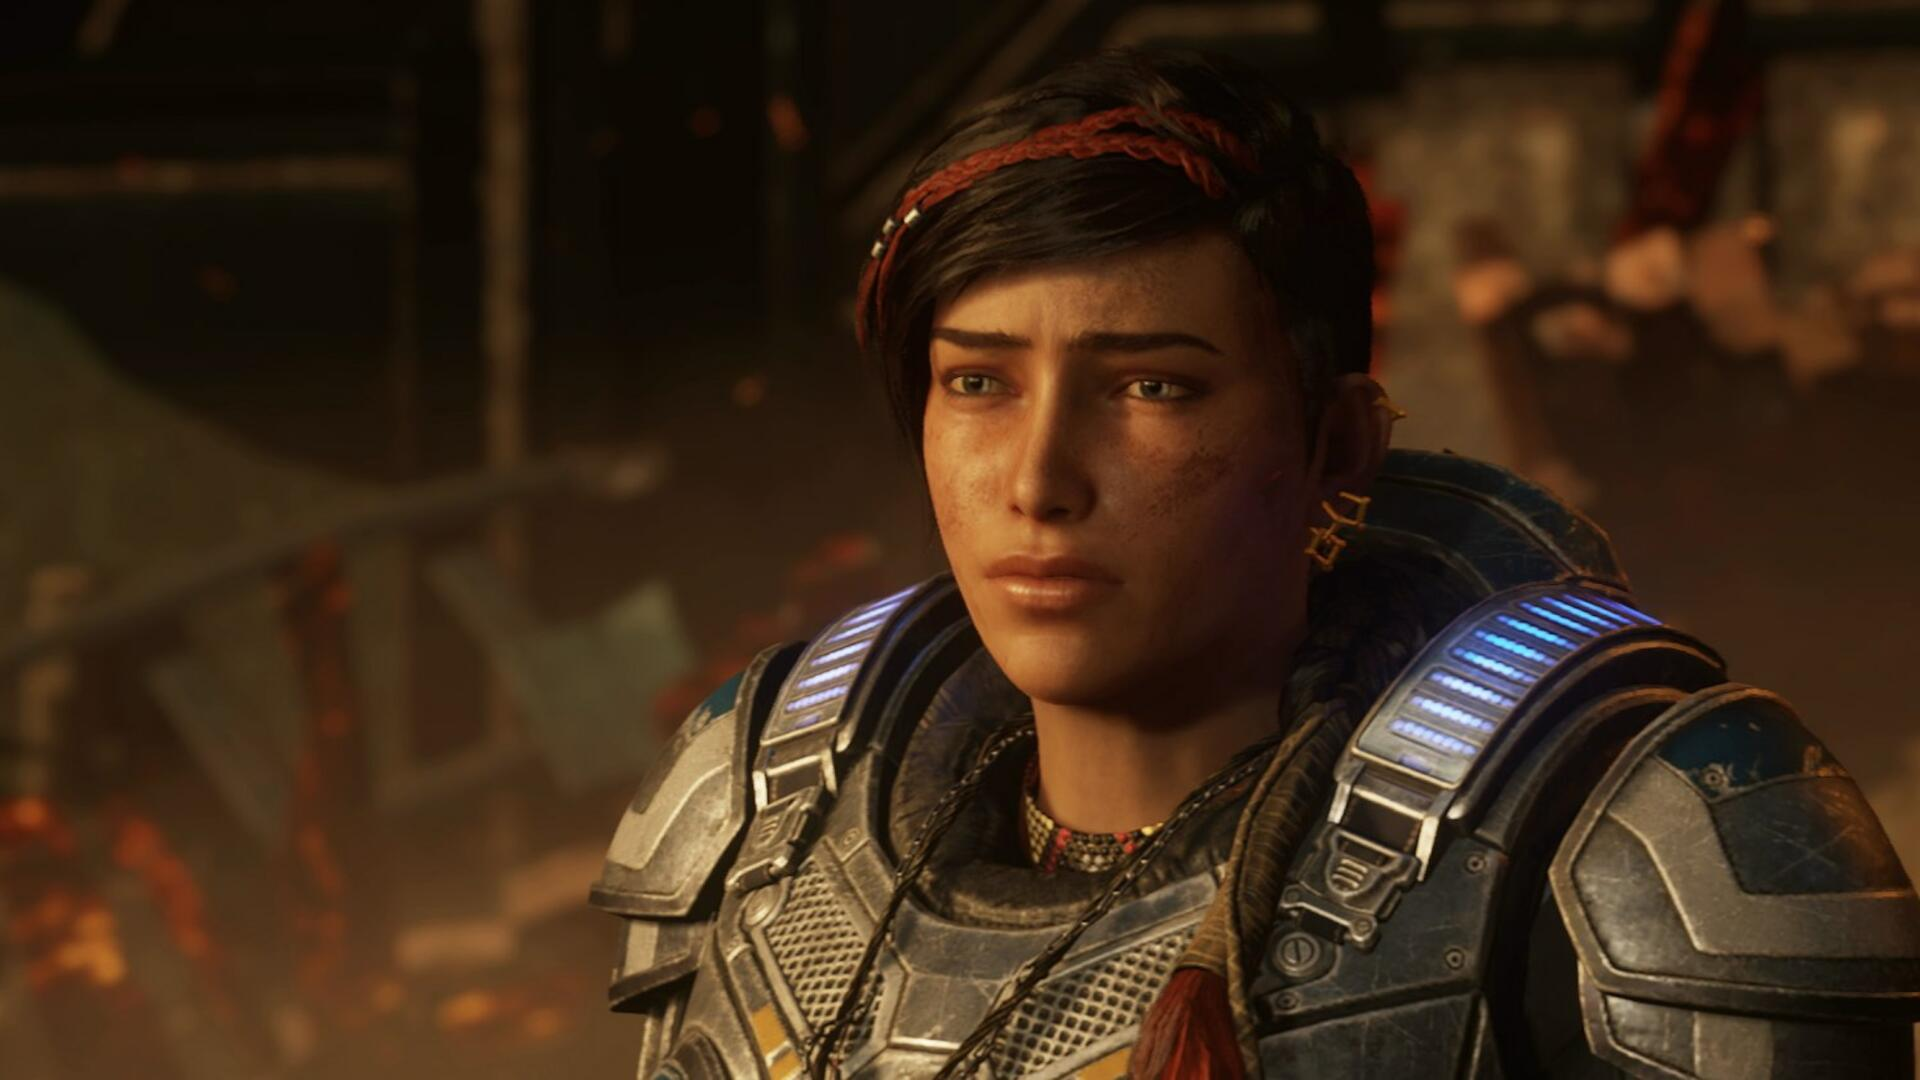 Gears 5 Collectibles - How to Find All Collectible Locations